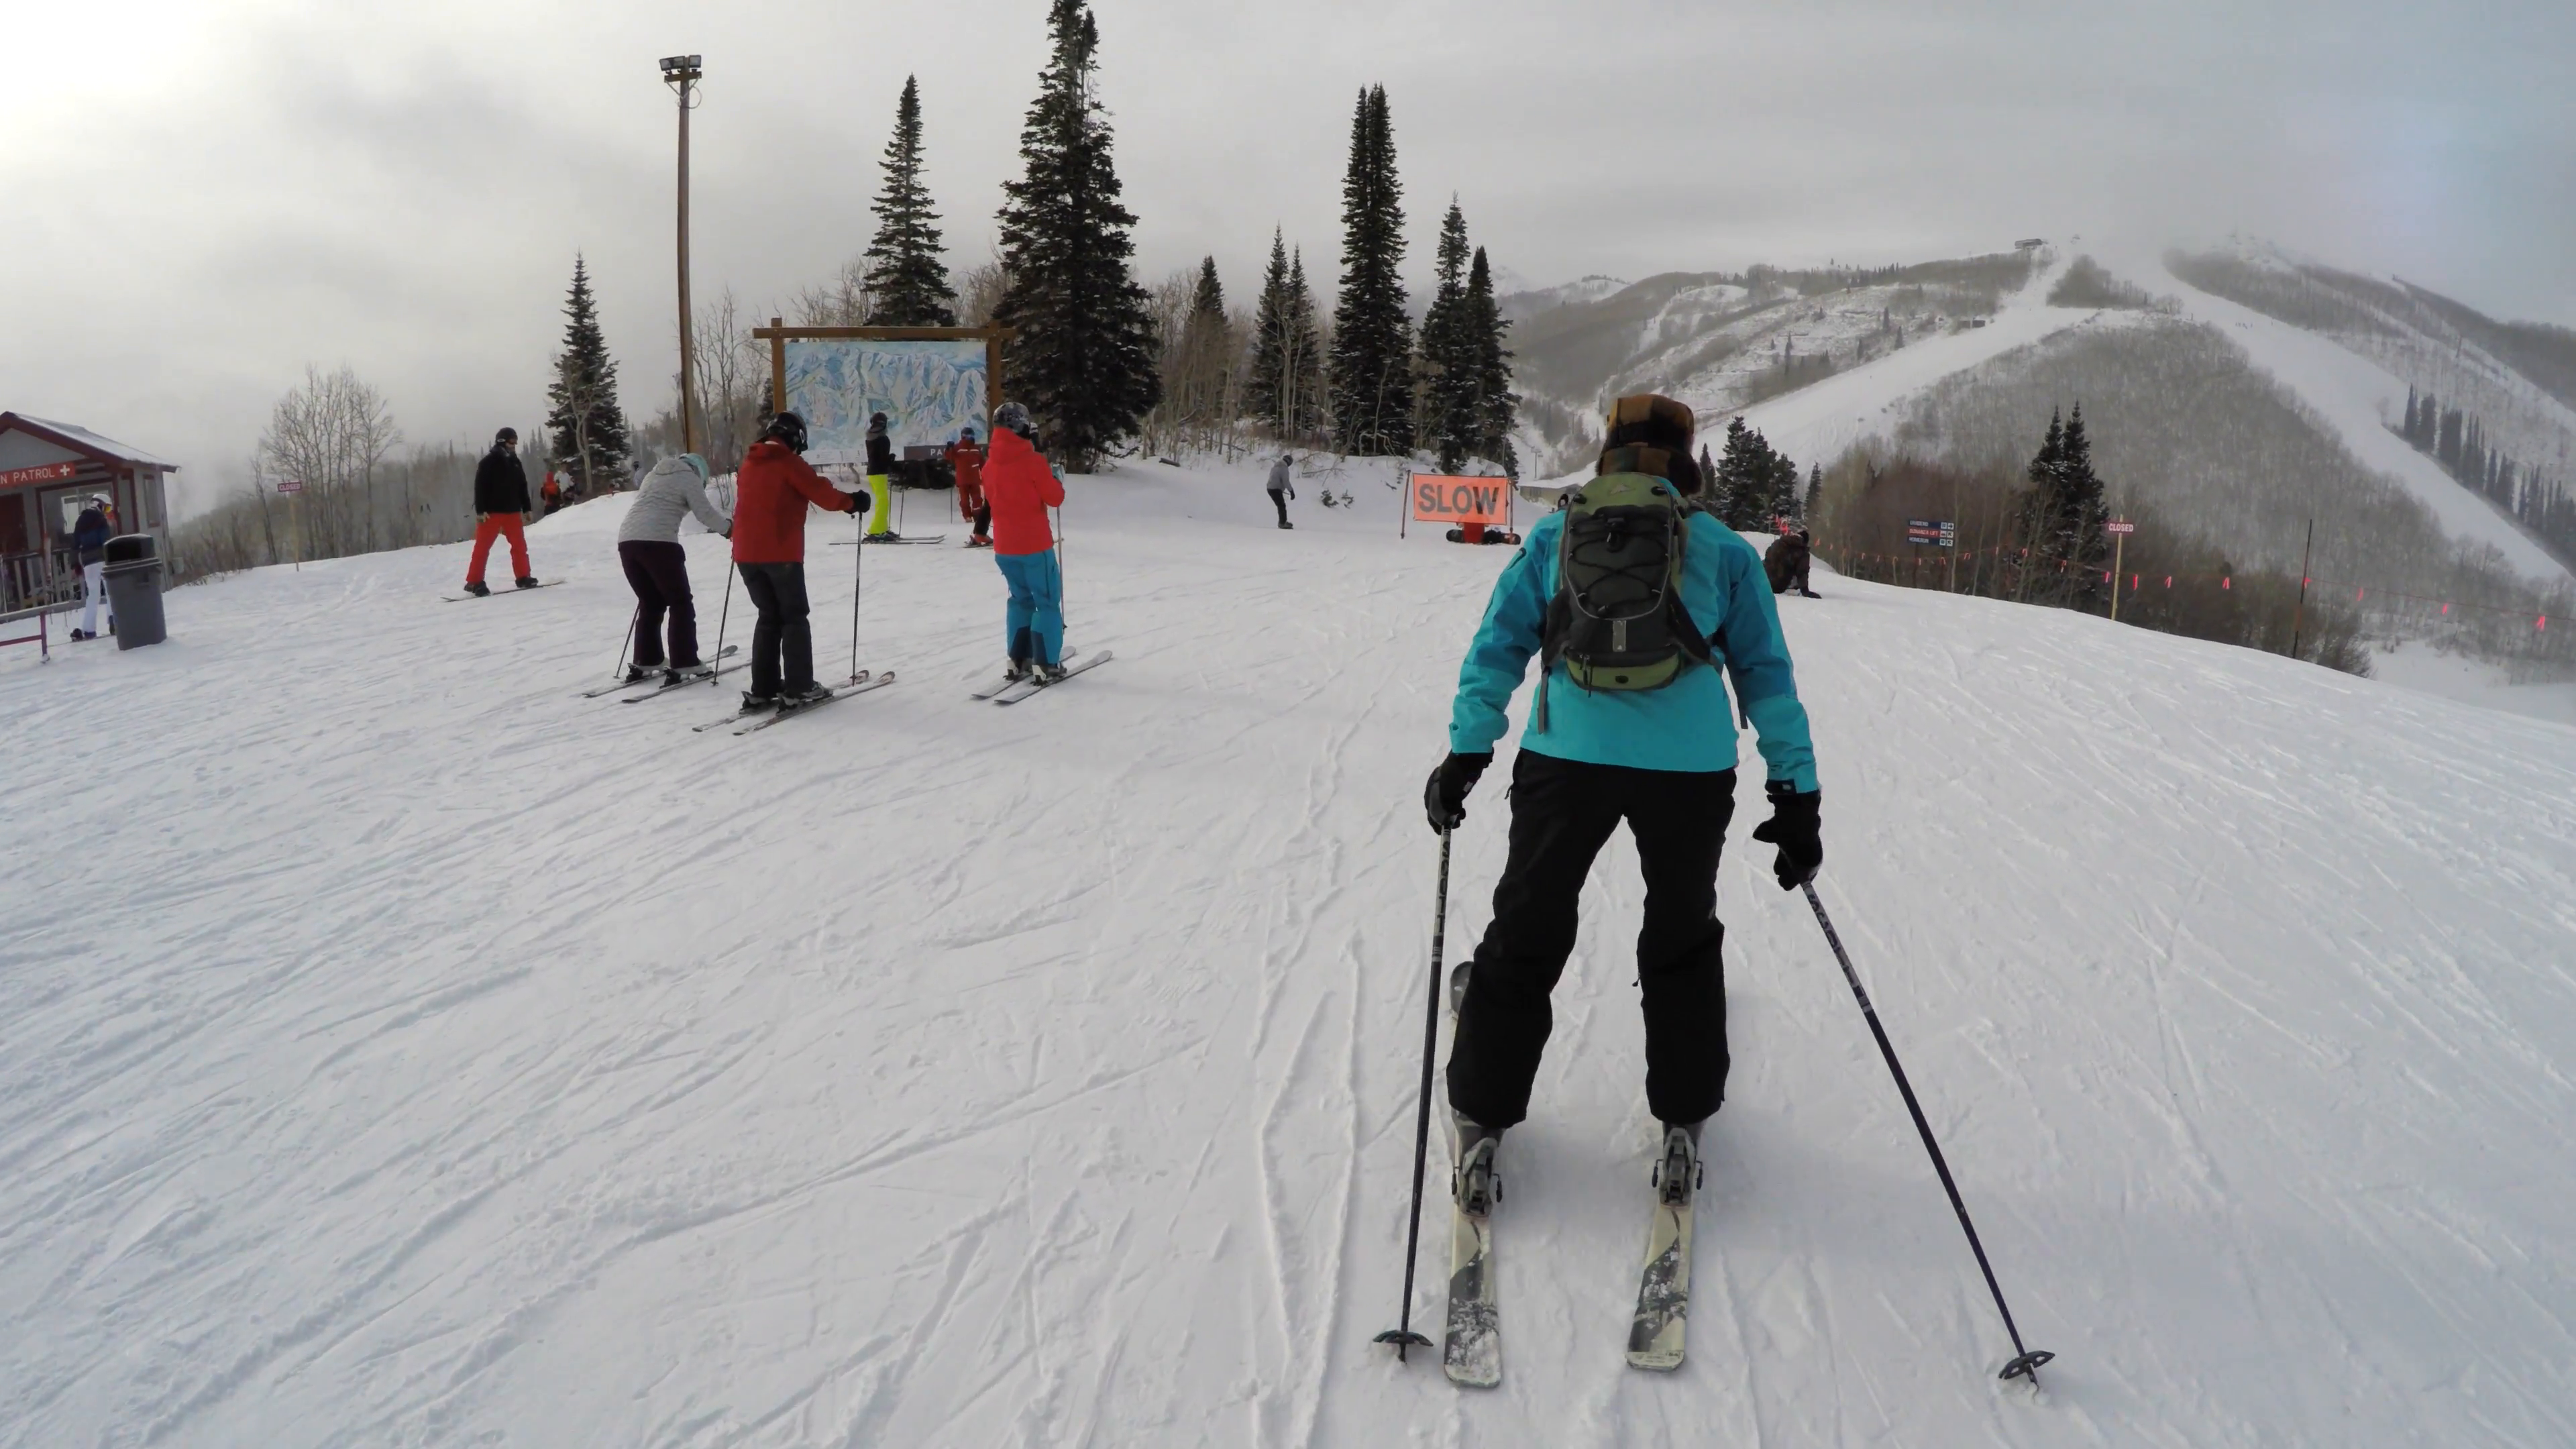 People skiing at a mountain resort on a cold winter day Stock Video Footage  - VideoBlocks - People In Cold Winter PNG